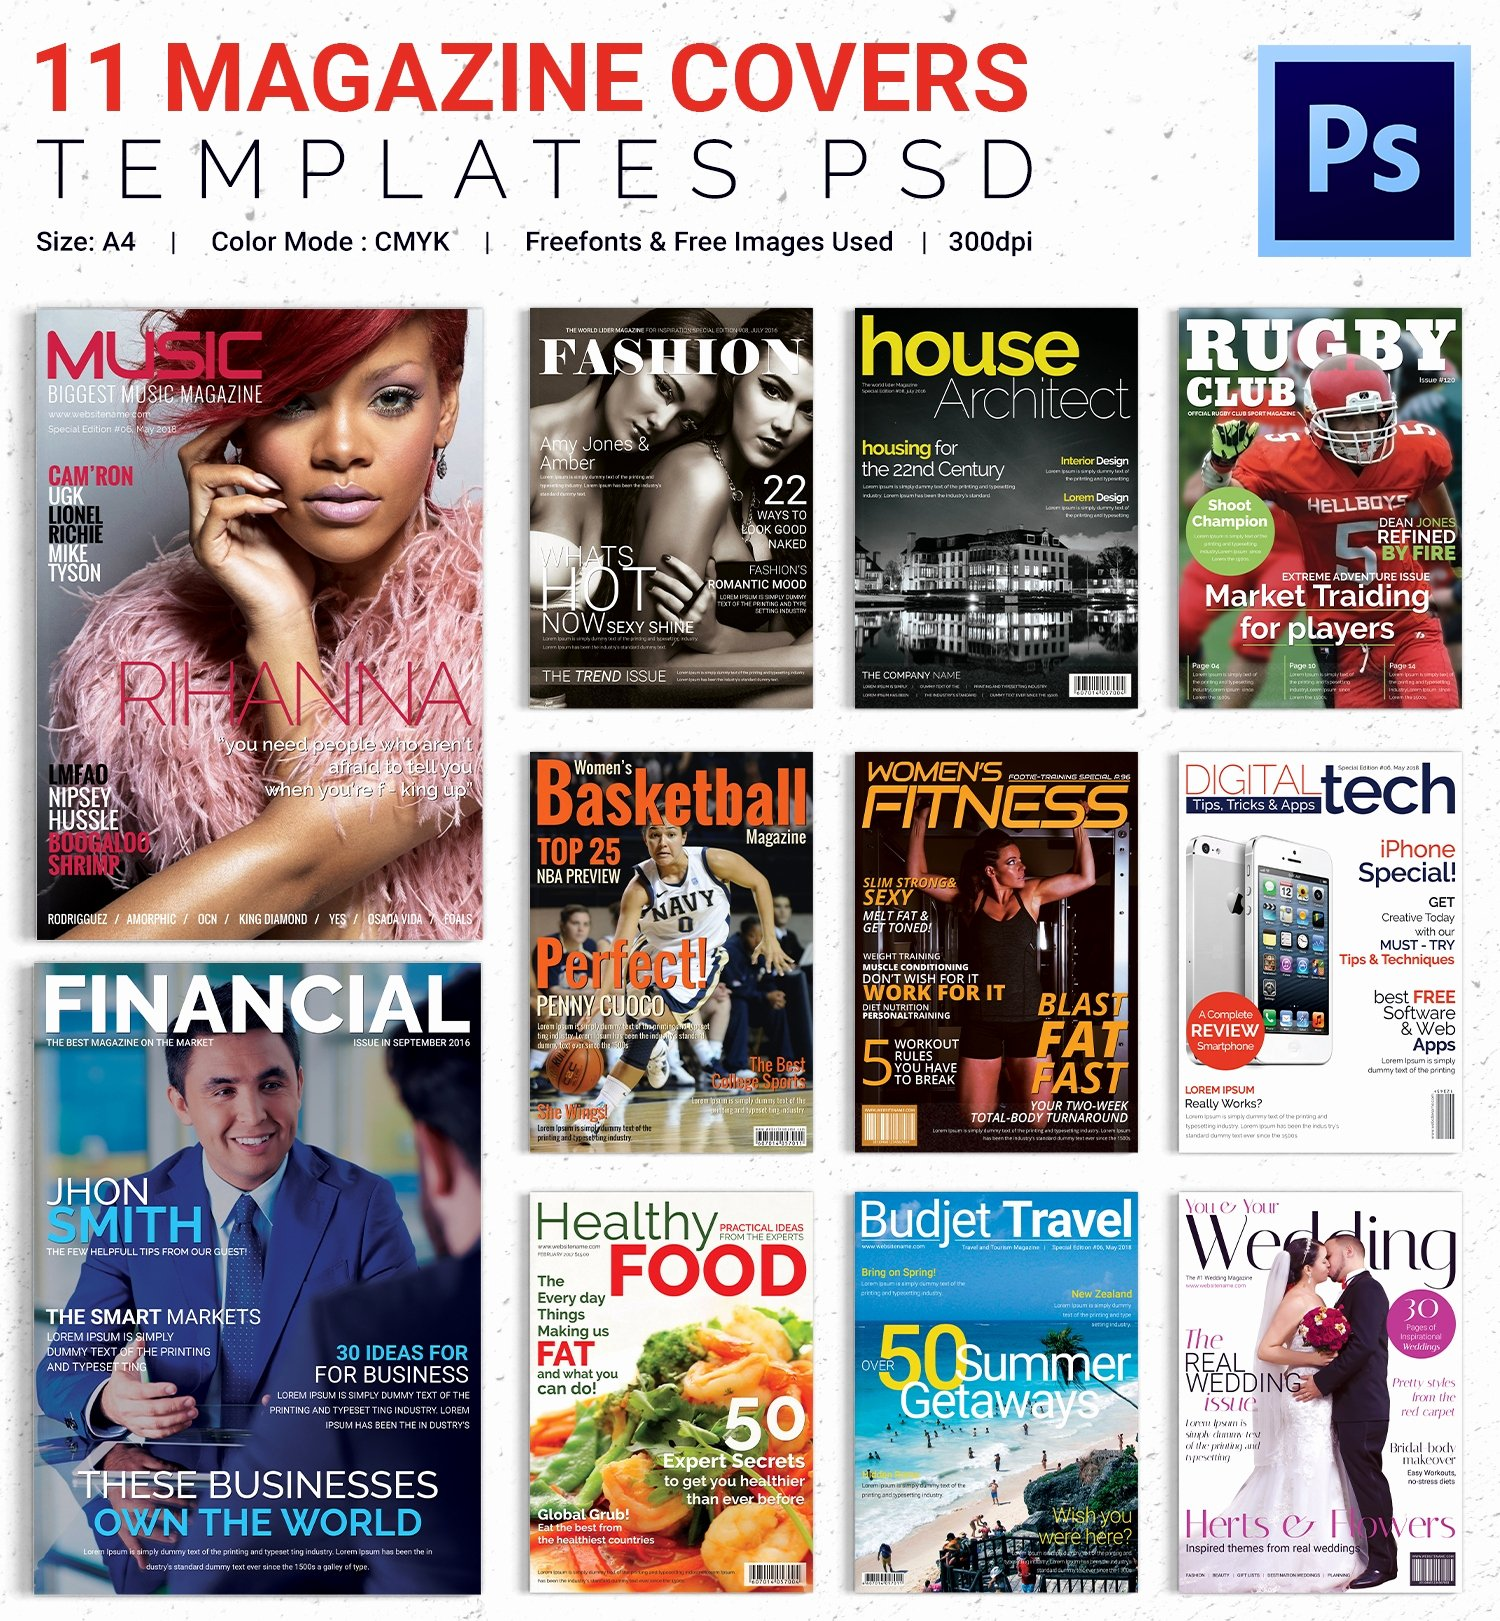 Magazine Cover Template Psd Awesome Magazine Cover Psd Template – 31 Free Psd Ai Vector Eps